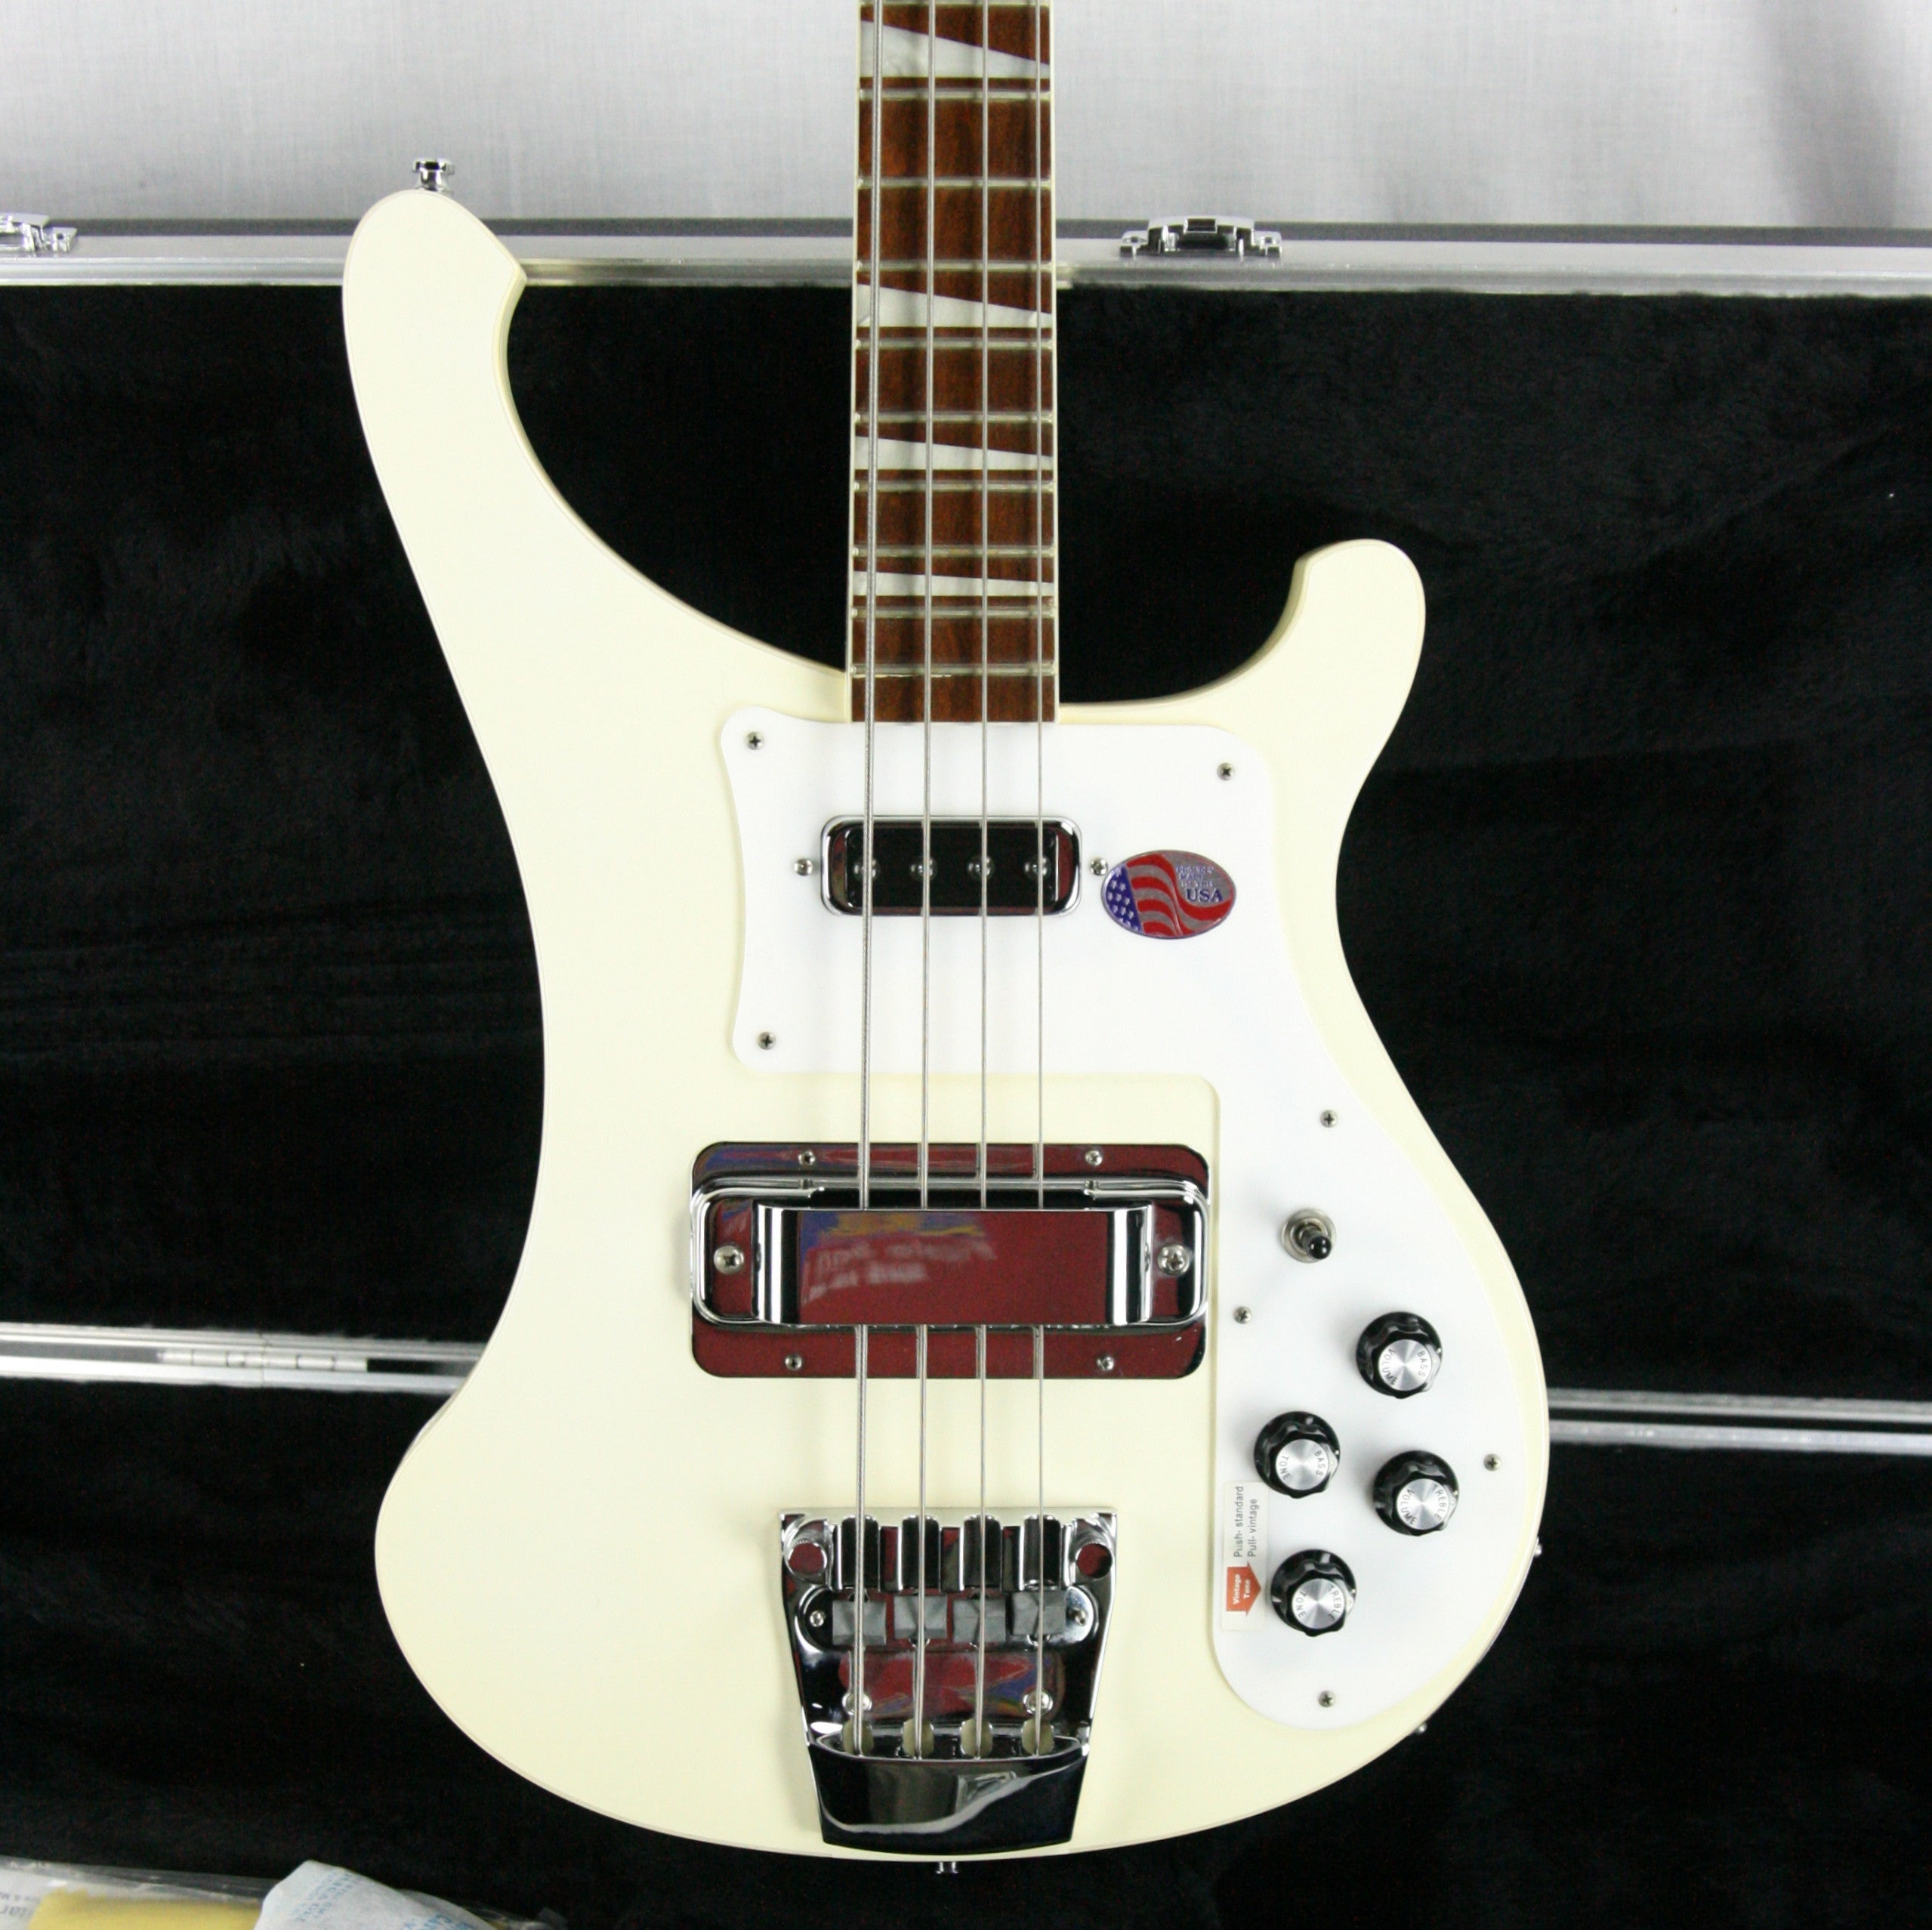 2014 Rickenbacker 4003 Snowglo White! Limited Edition Bass Guitar! Rare Color